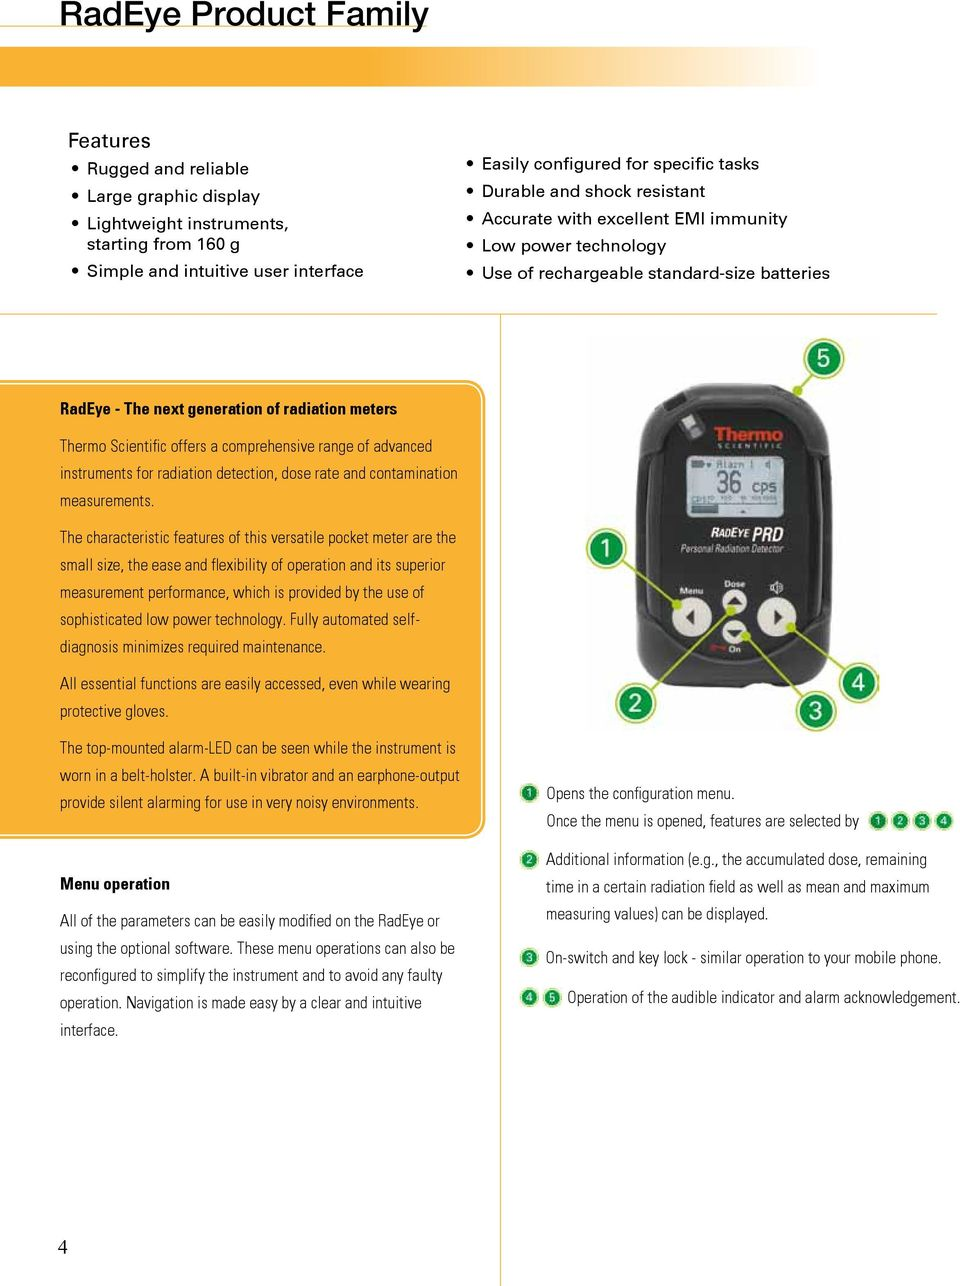 comprehensive range of advanced instruments for radiation detection, dose rate and contamination measurements.